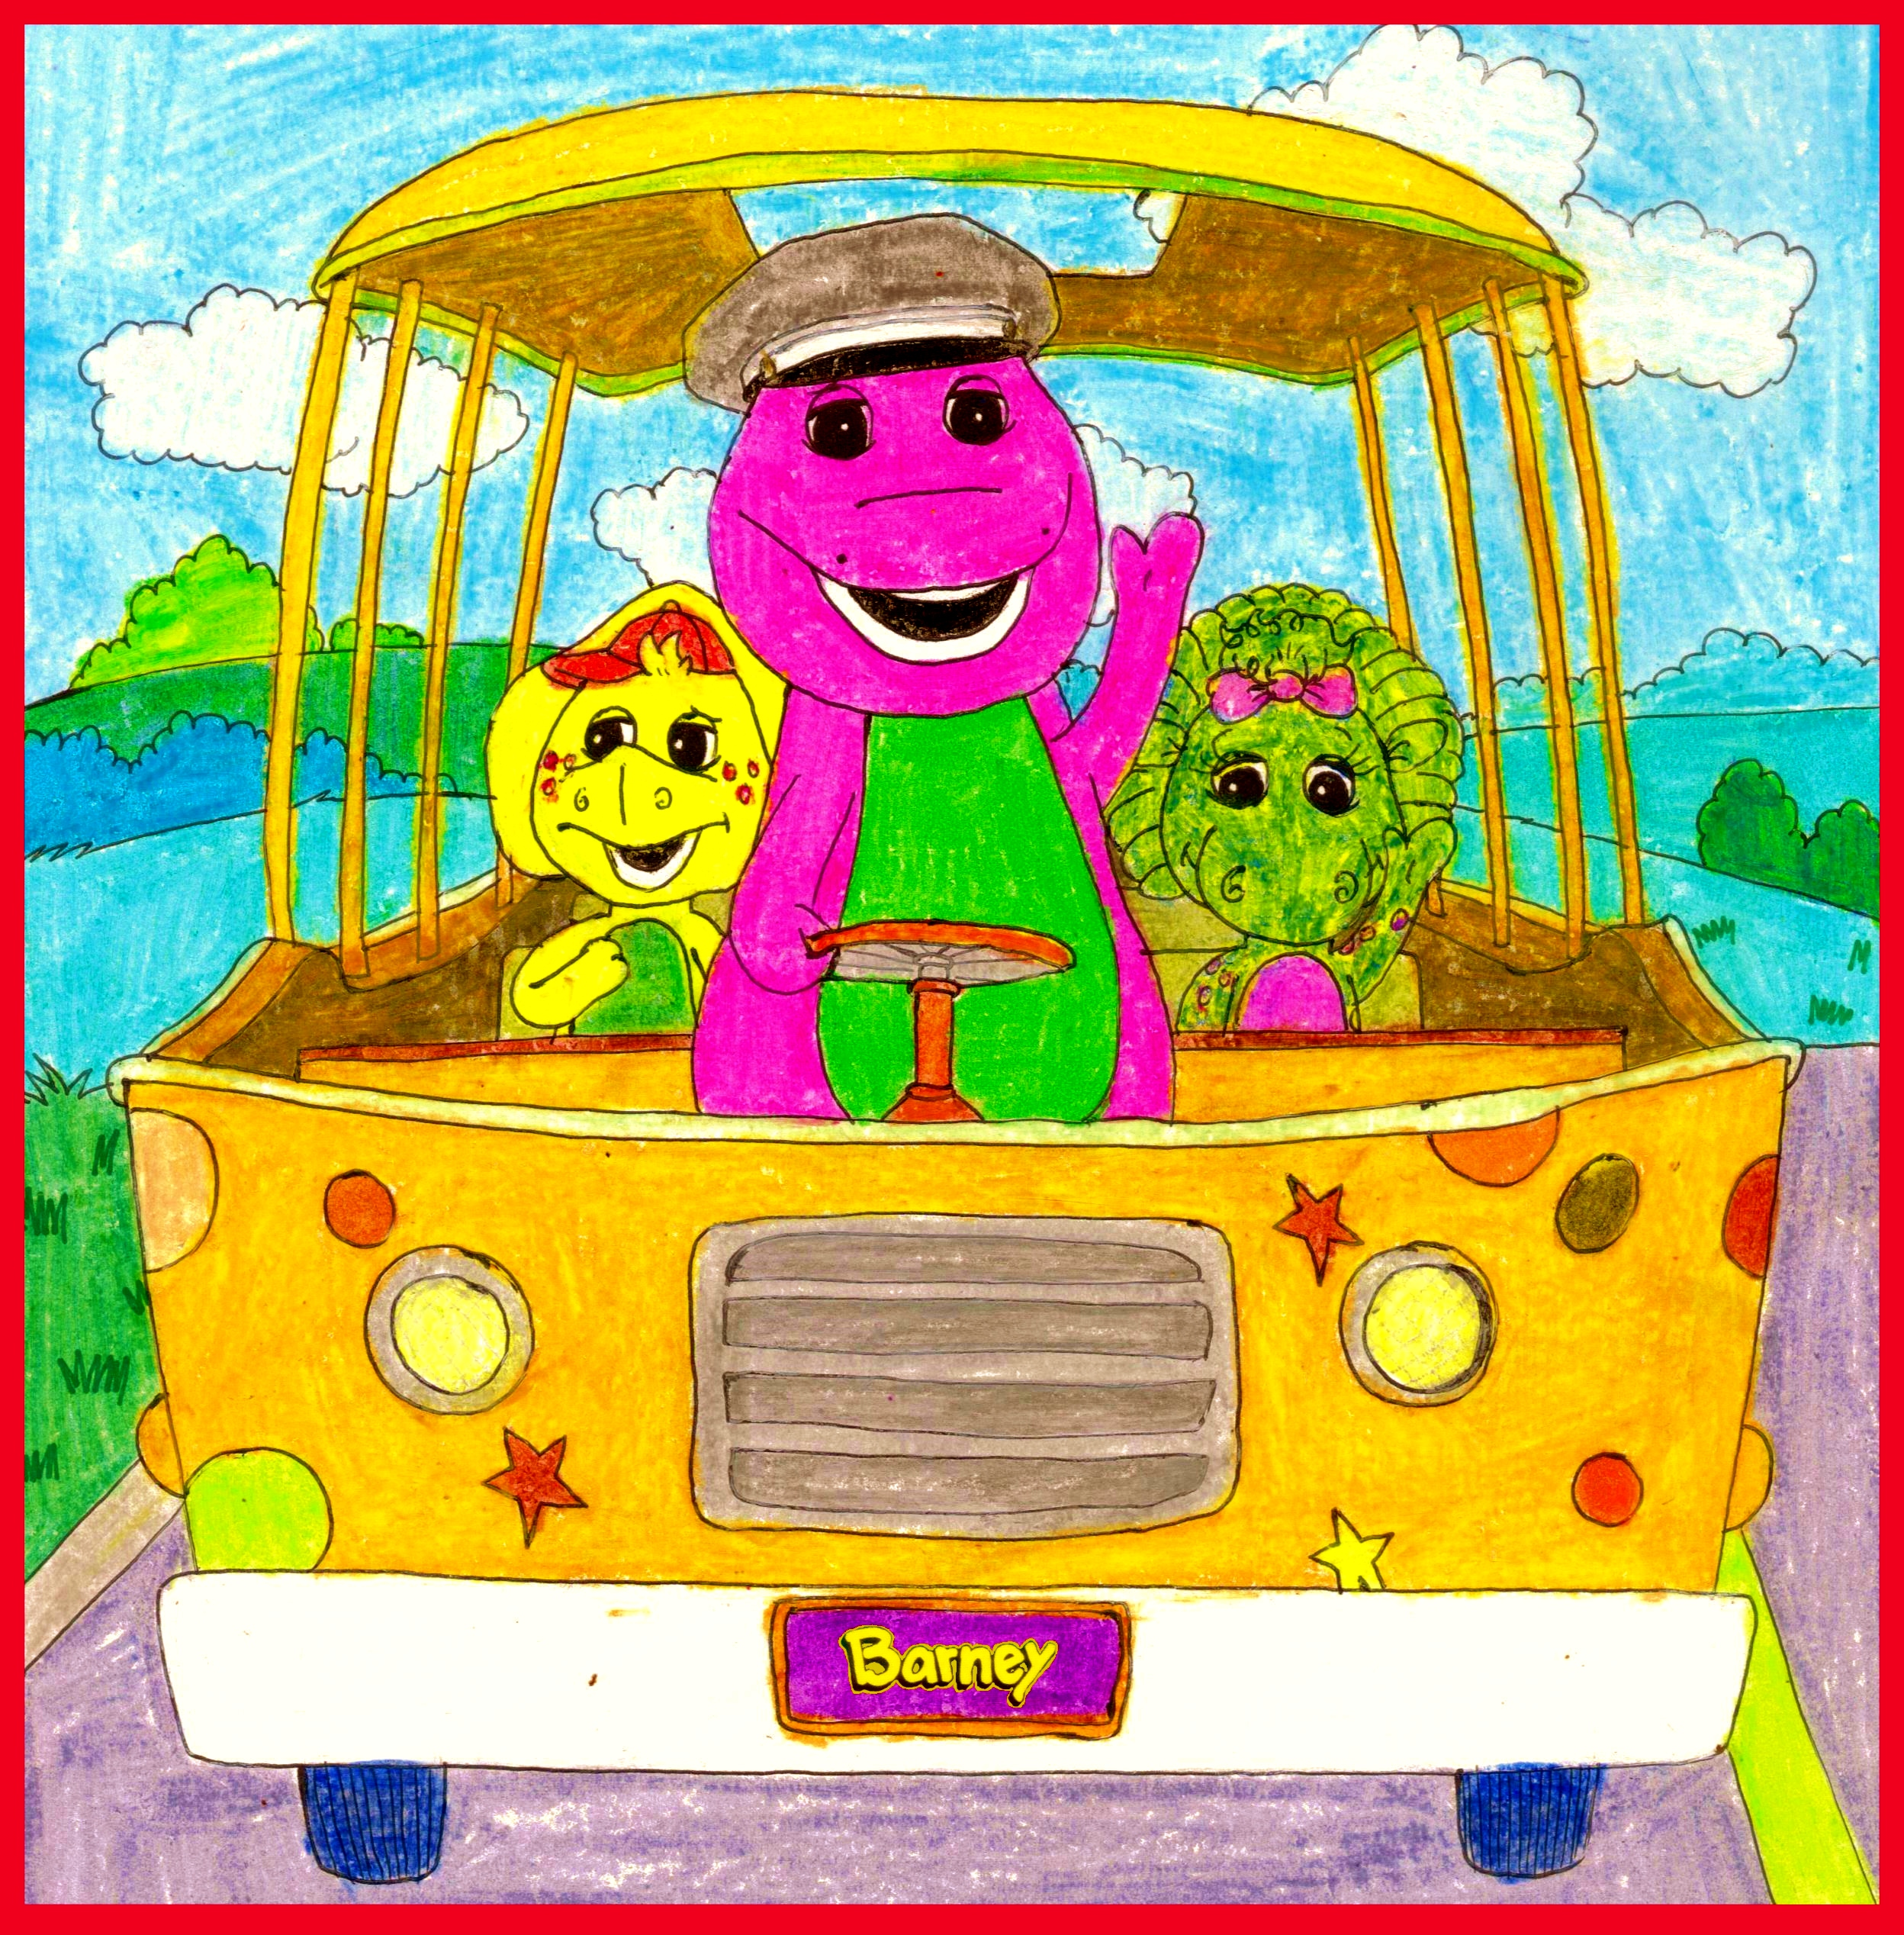 Barney And The Backyard Gang A Day At The Beach: Barney's Adventure Bus By BestBarneyFan On DeviantArt